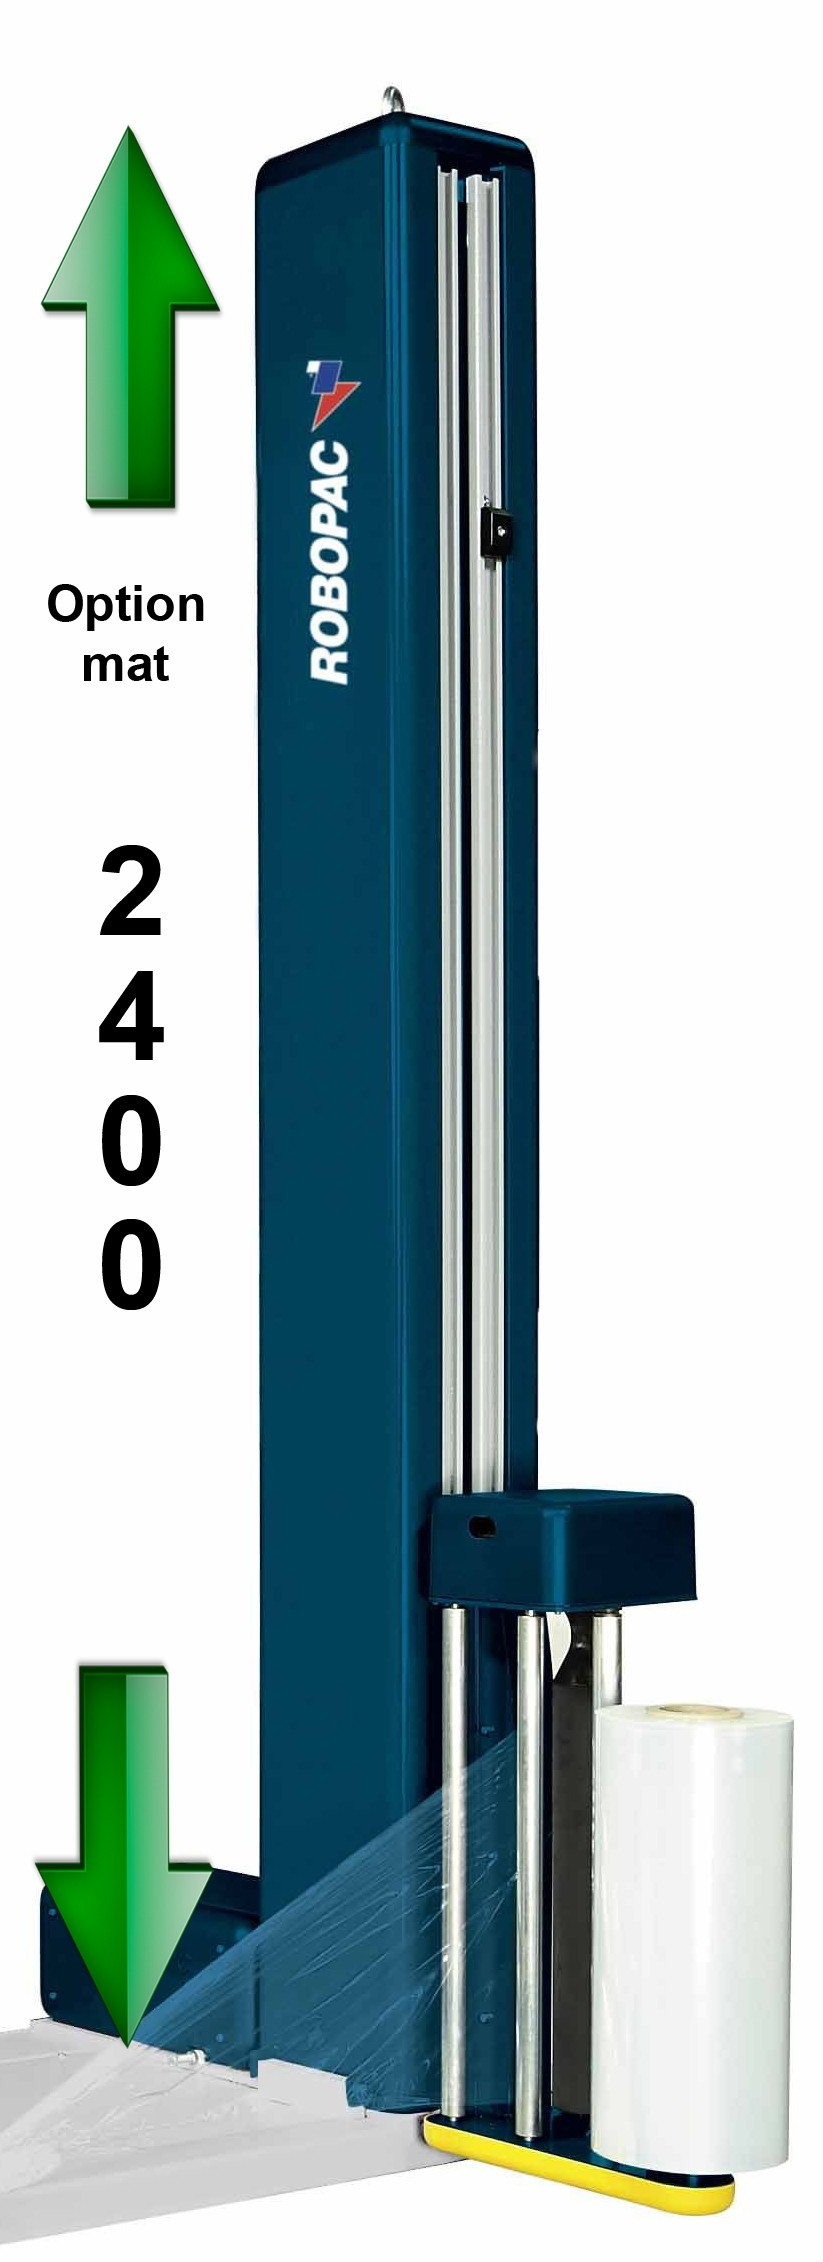 BANDEROLEUSES-PAS-CHERE-ECOPLAT-BASE option mât 2400 mm